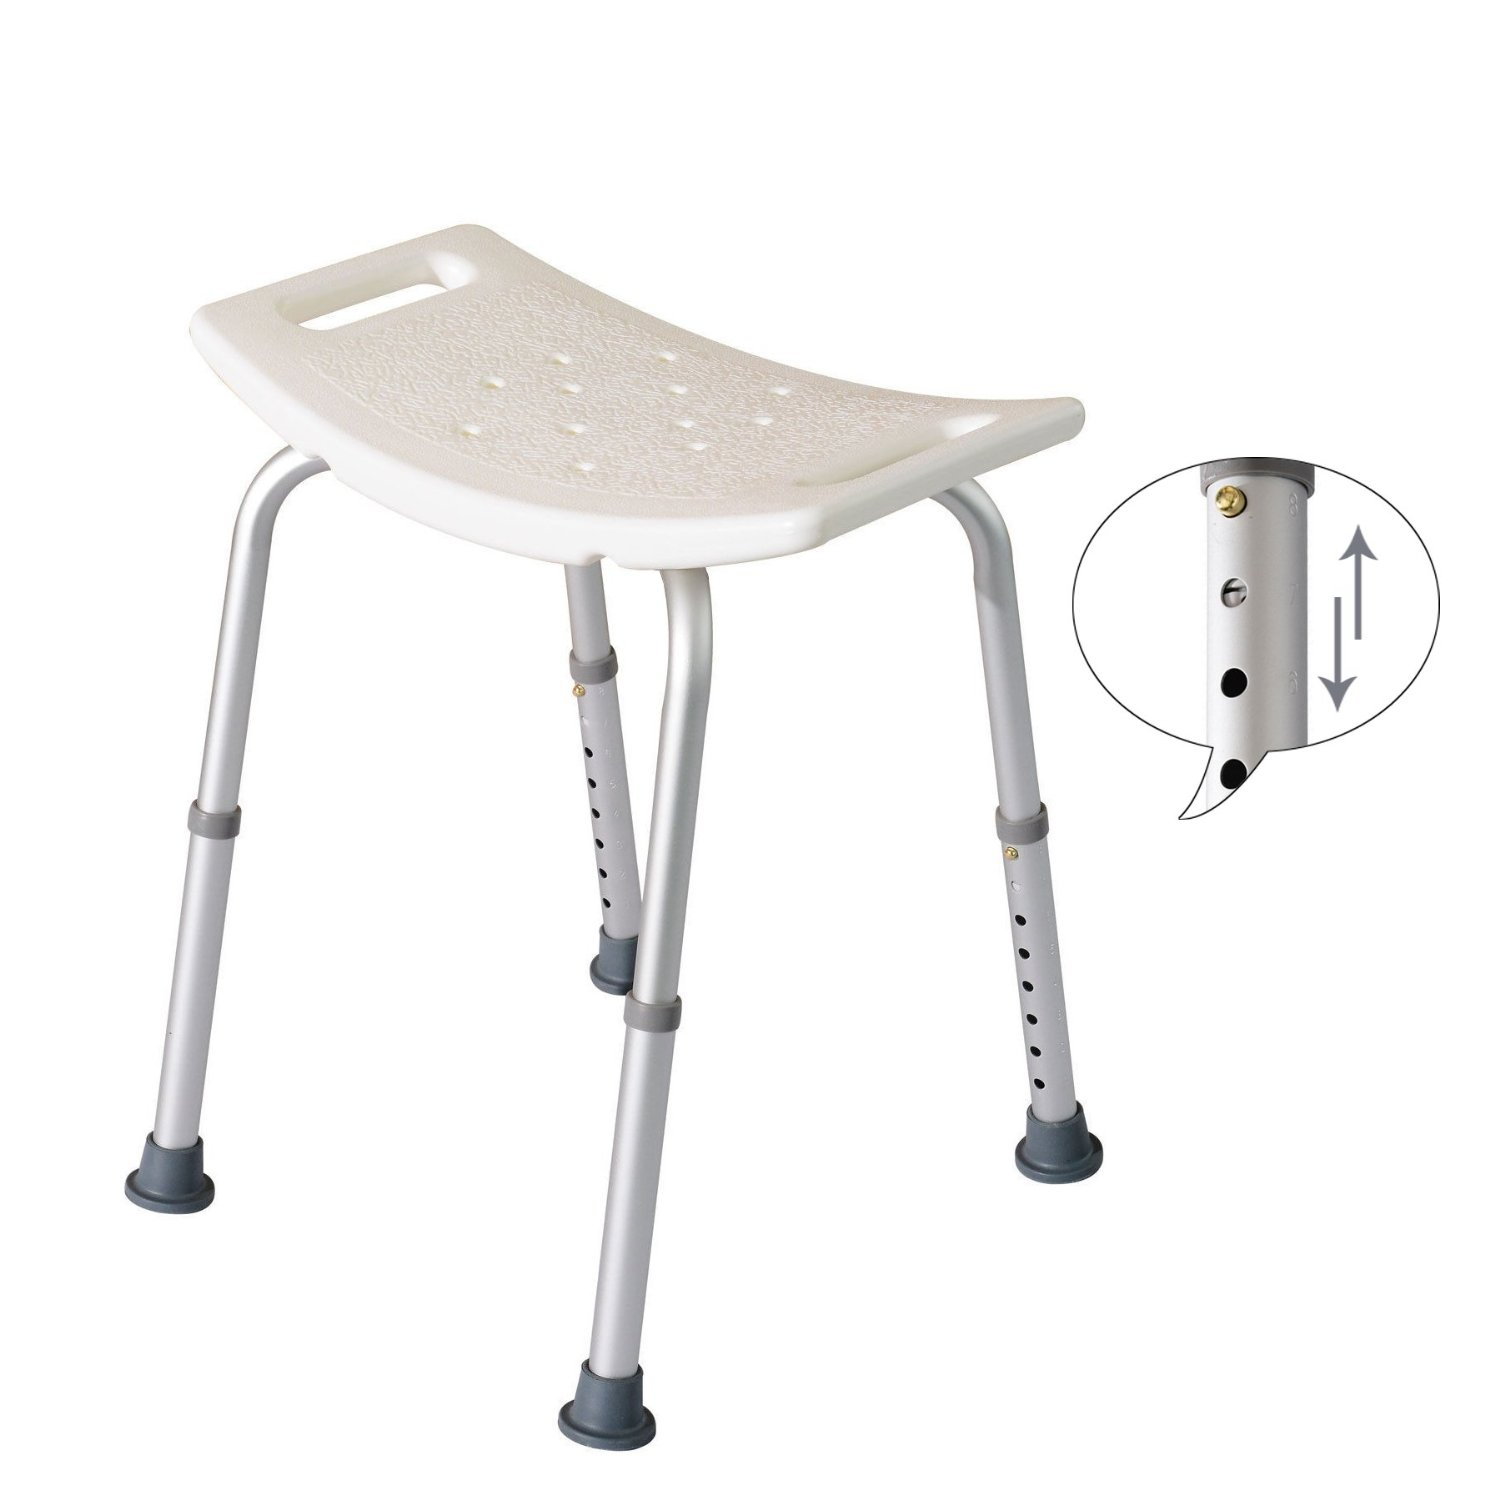 Ergonomic Round Adjustable Medical Shower Stool Bath Chair Bathtub Seat Bench Square